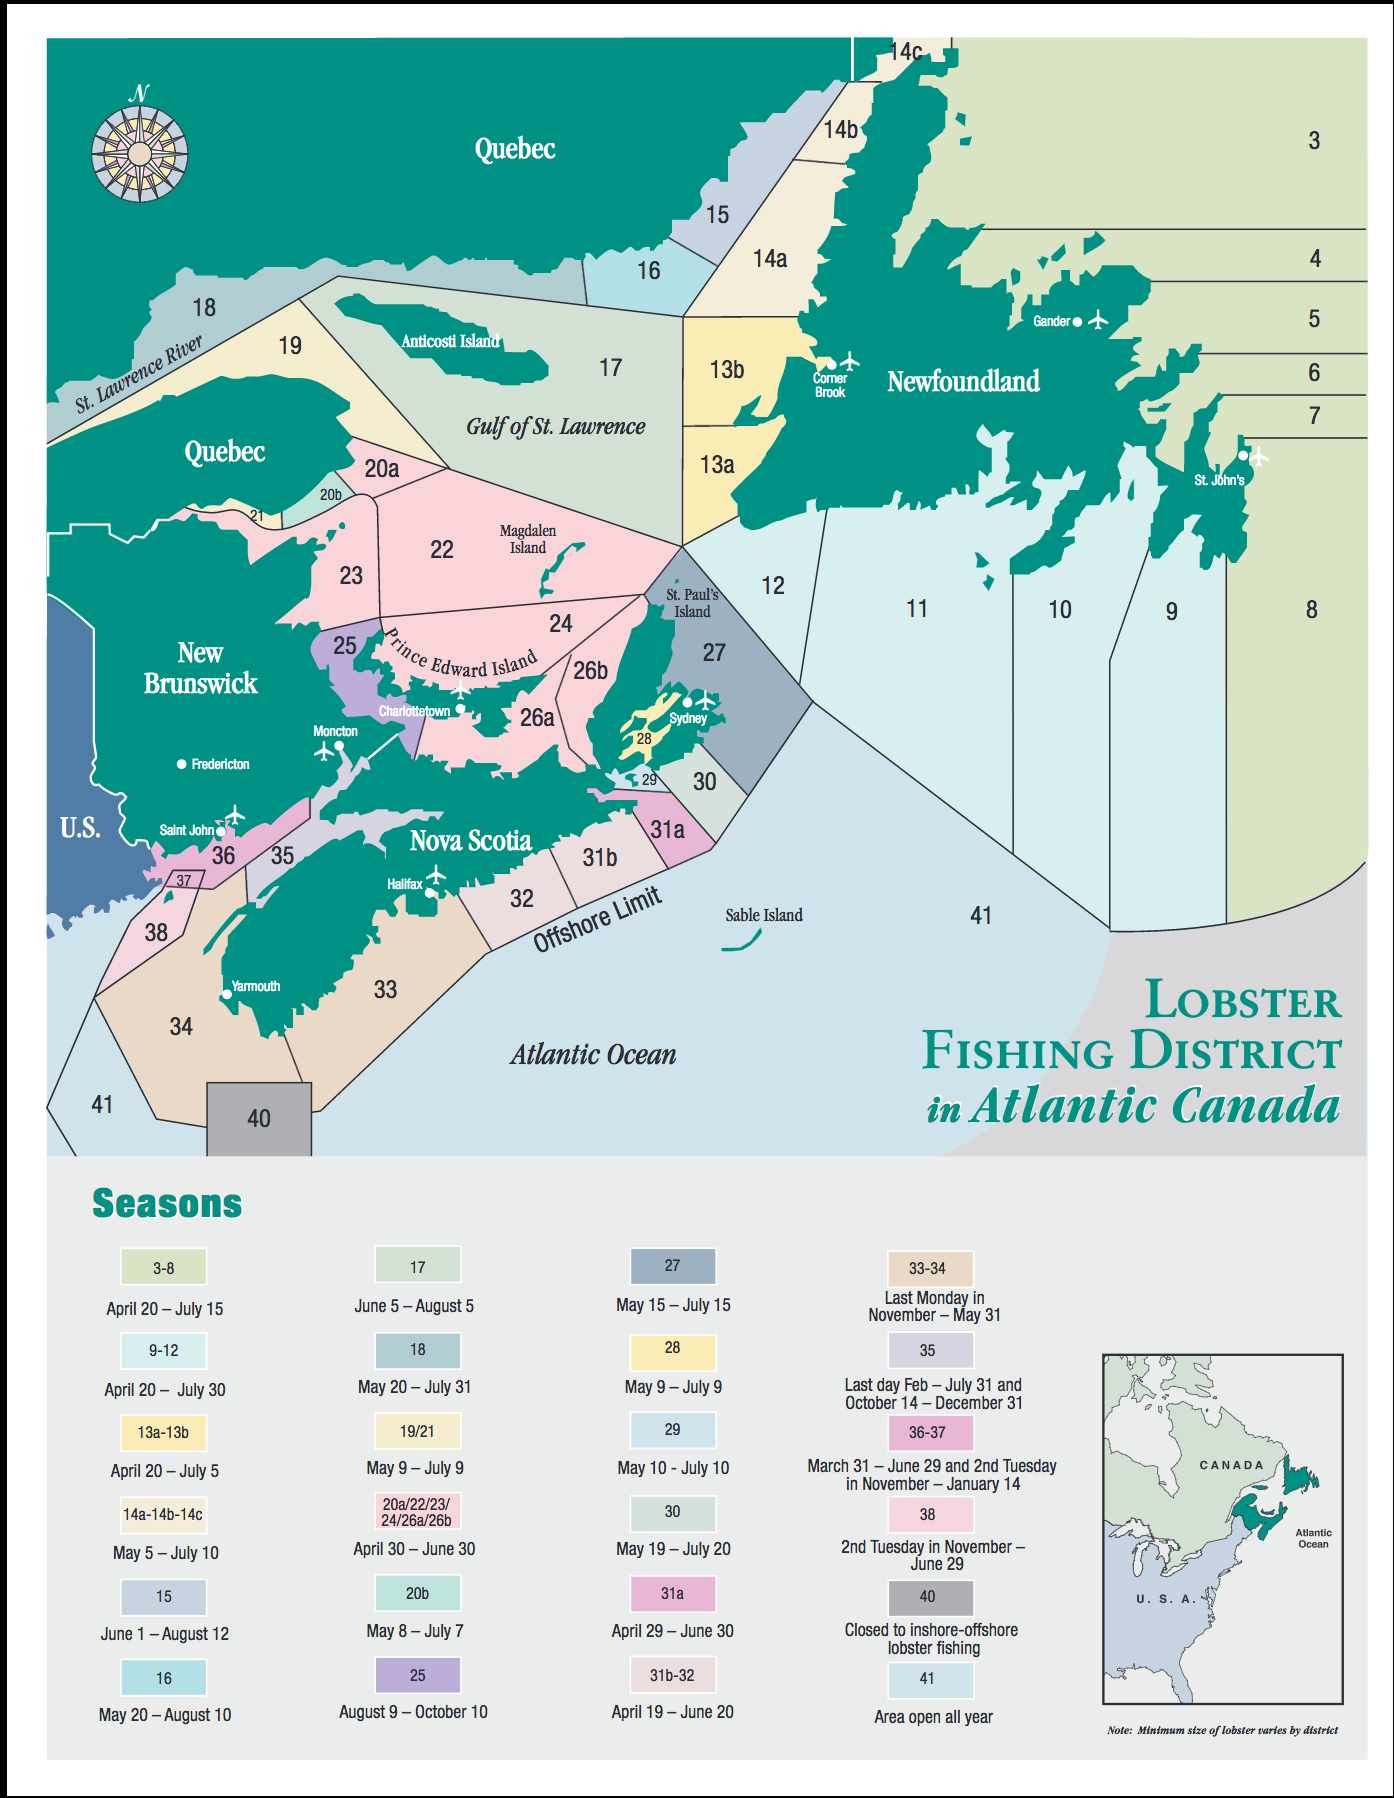 Atlantic Canada Lobster Fishing Districts